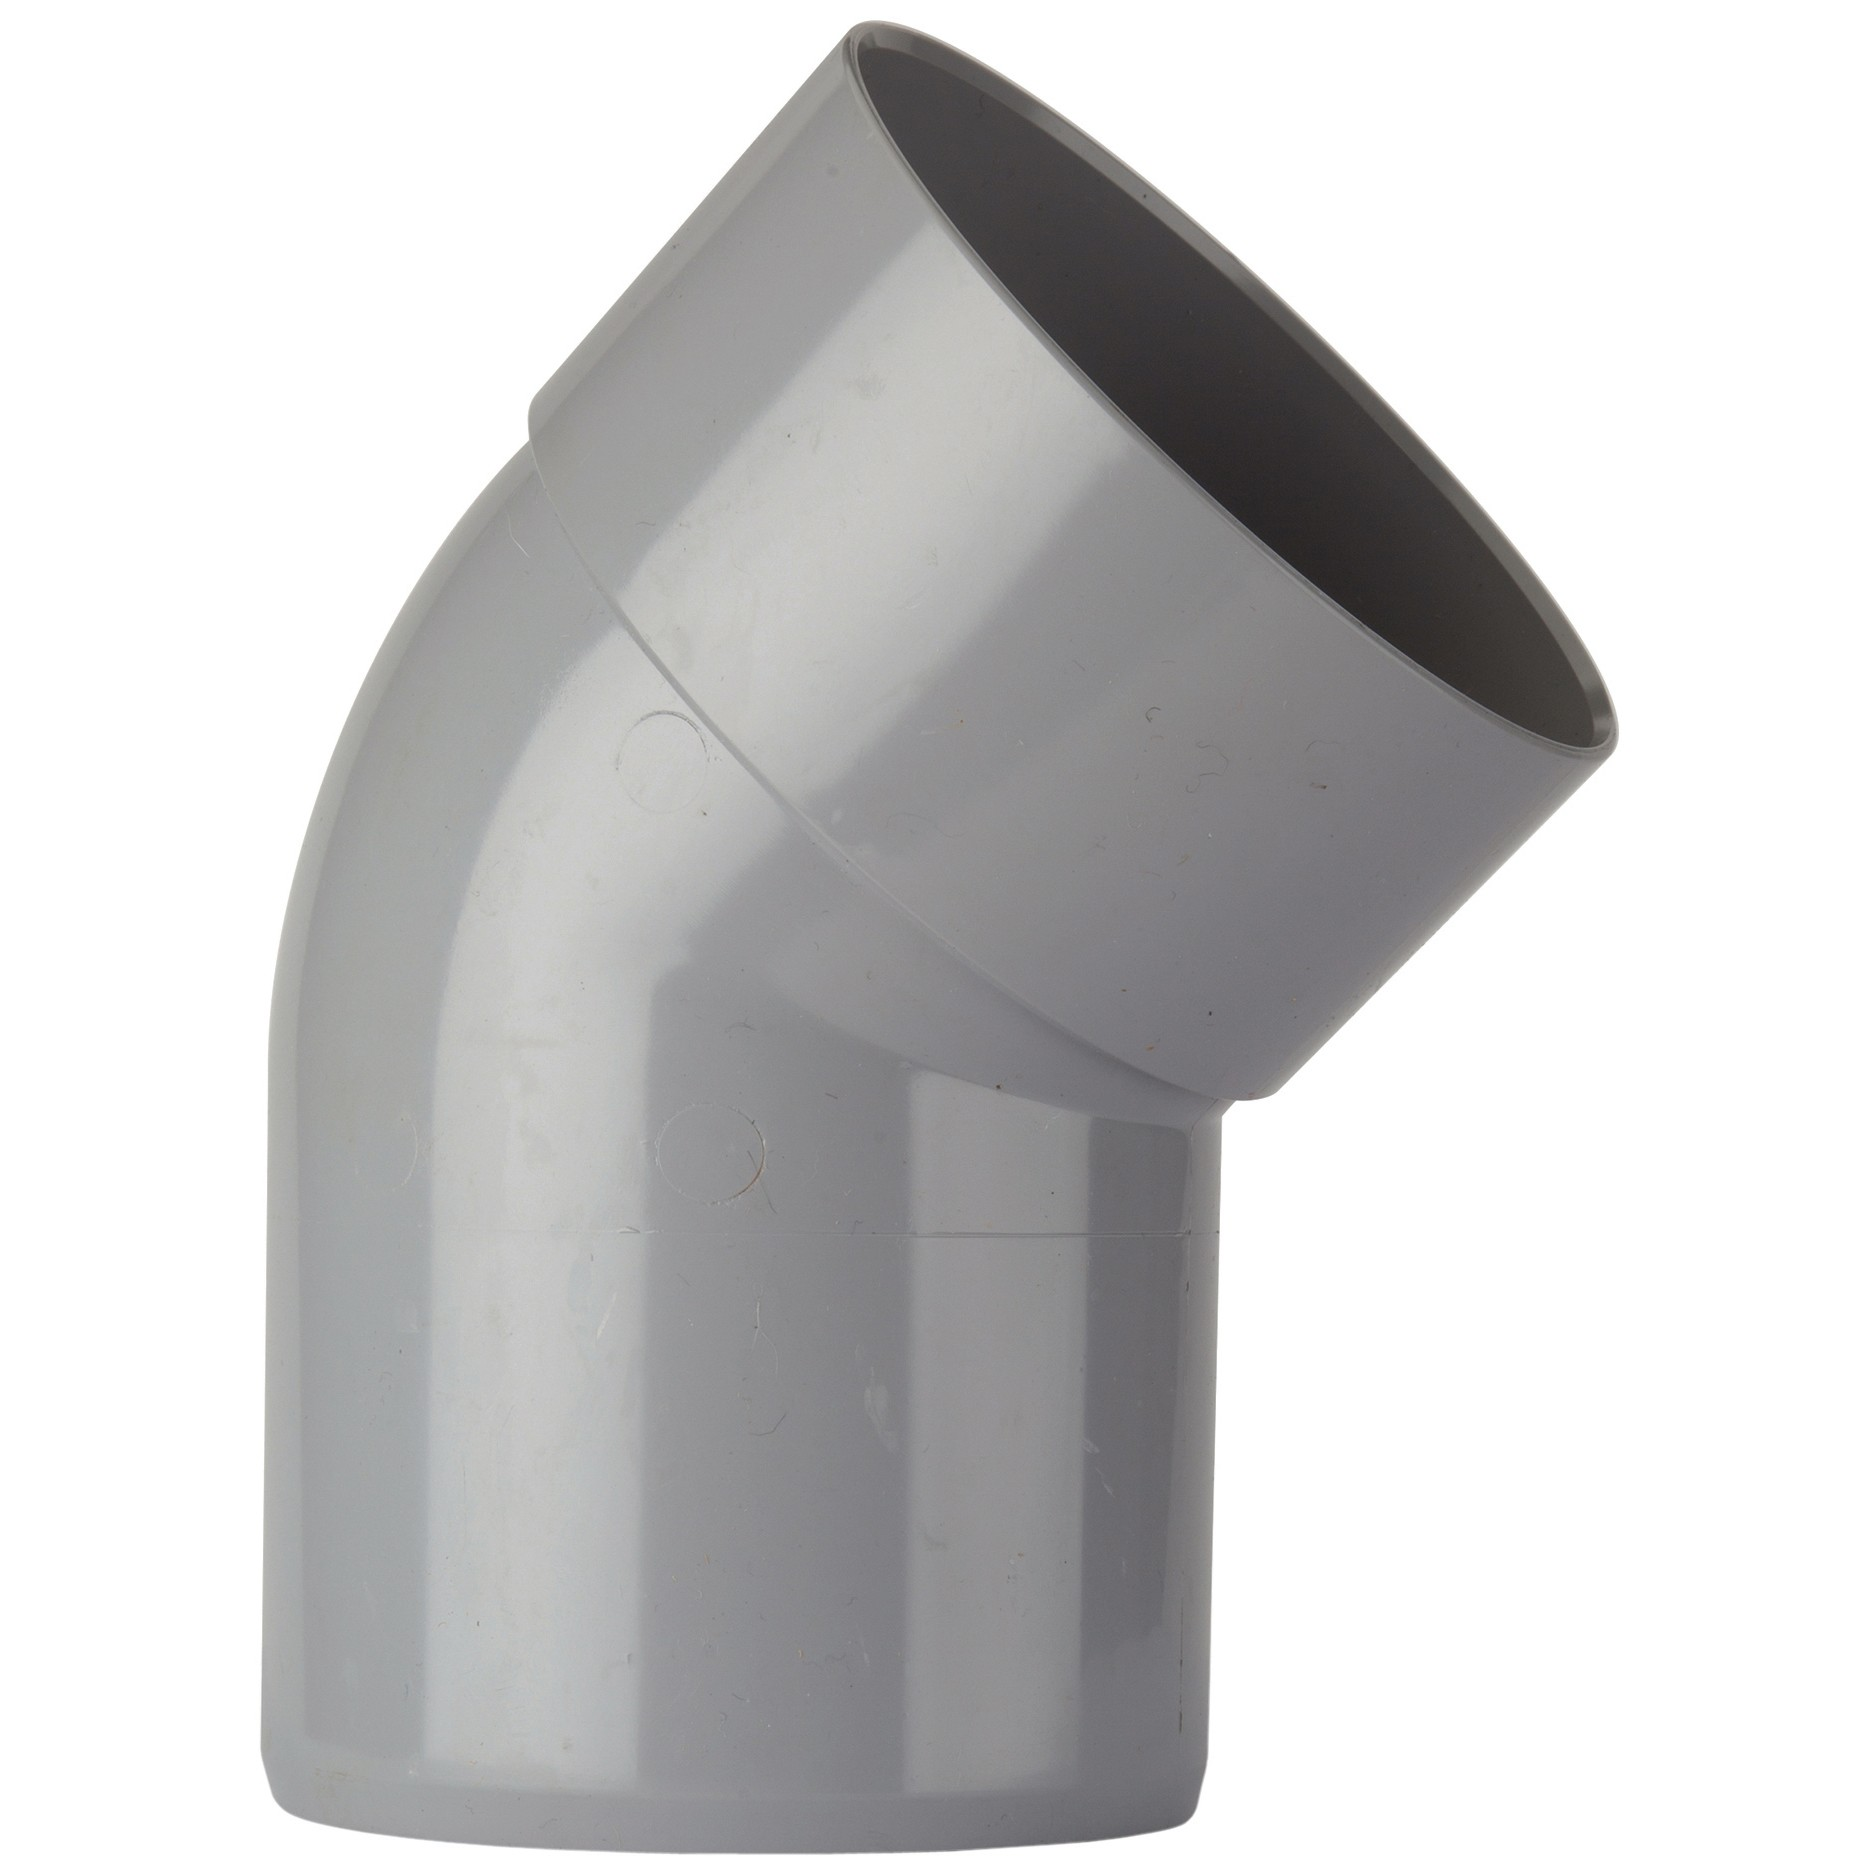 Polypipe 110mm Soil Single Socket 135 Degree Offset Bend - Grey